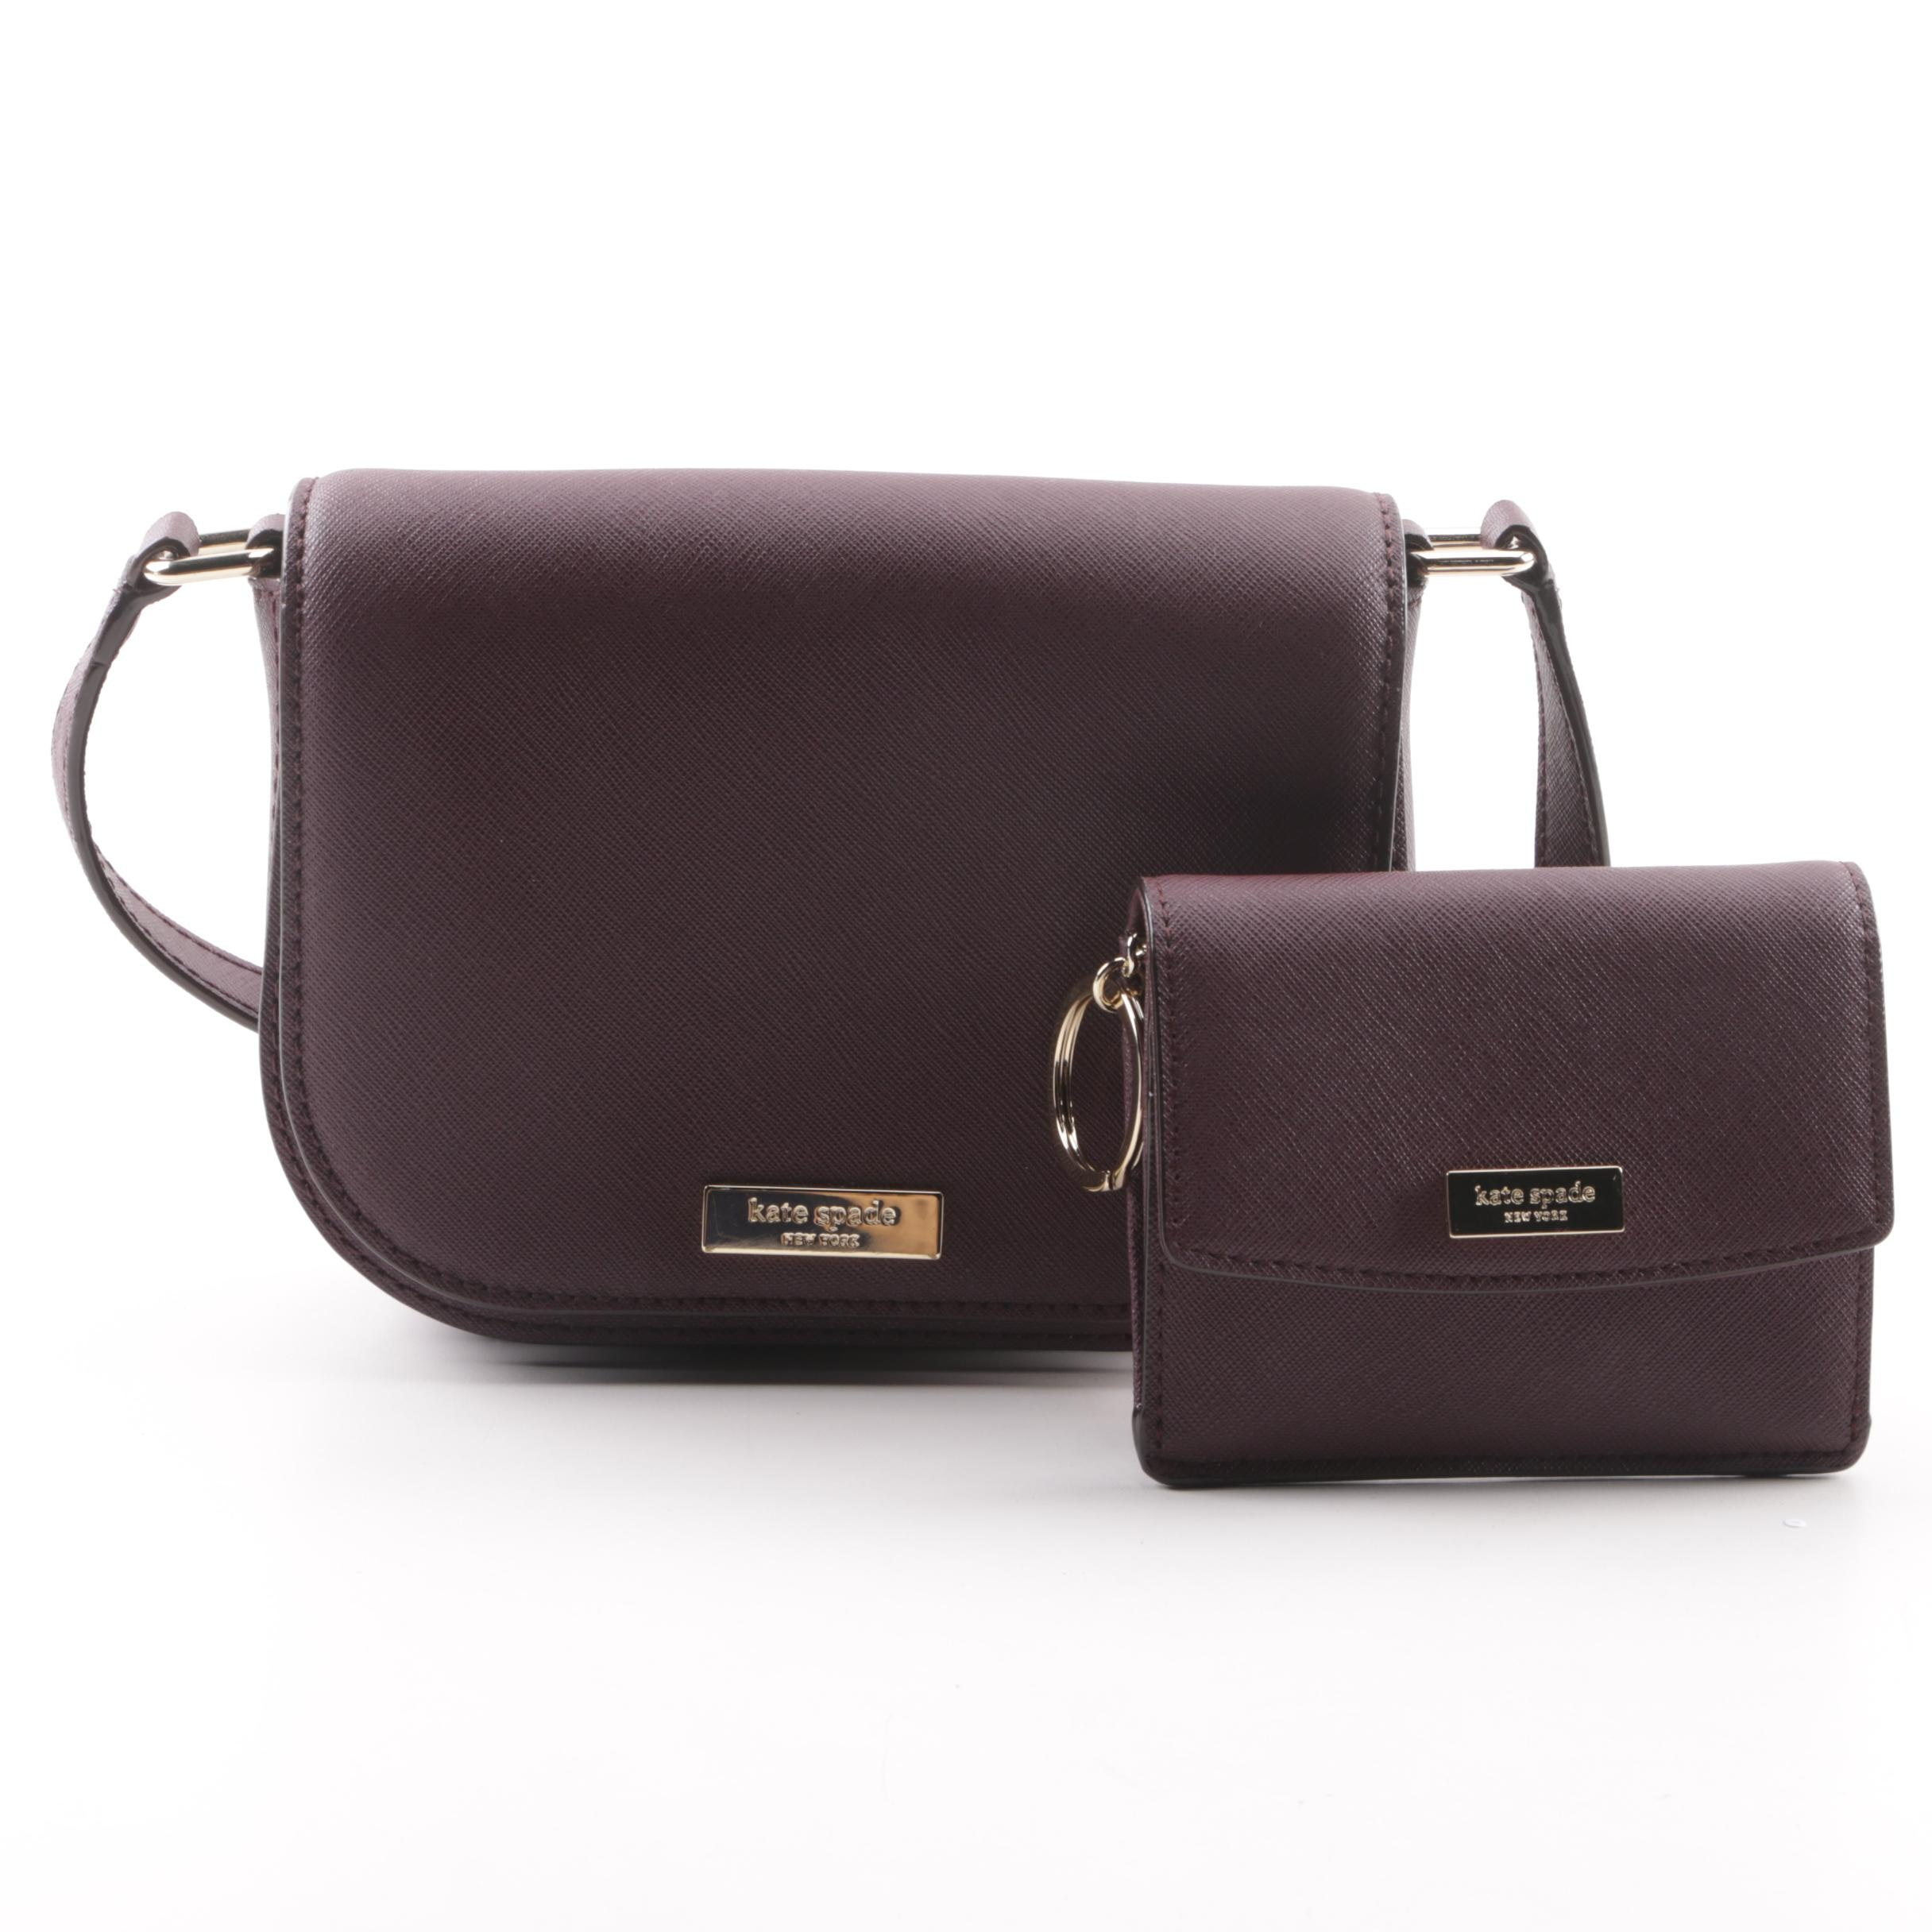 Kate Spade New York Deep Plum Coated Canvas Crossbody with Matching Wallet